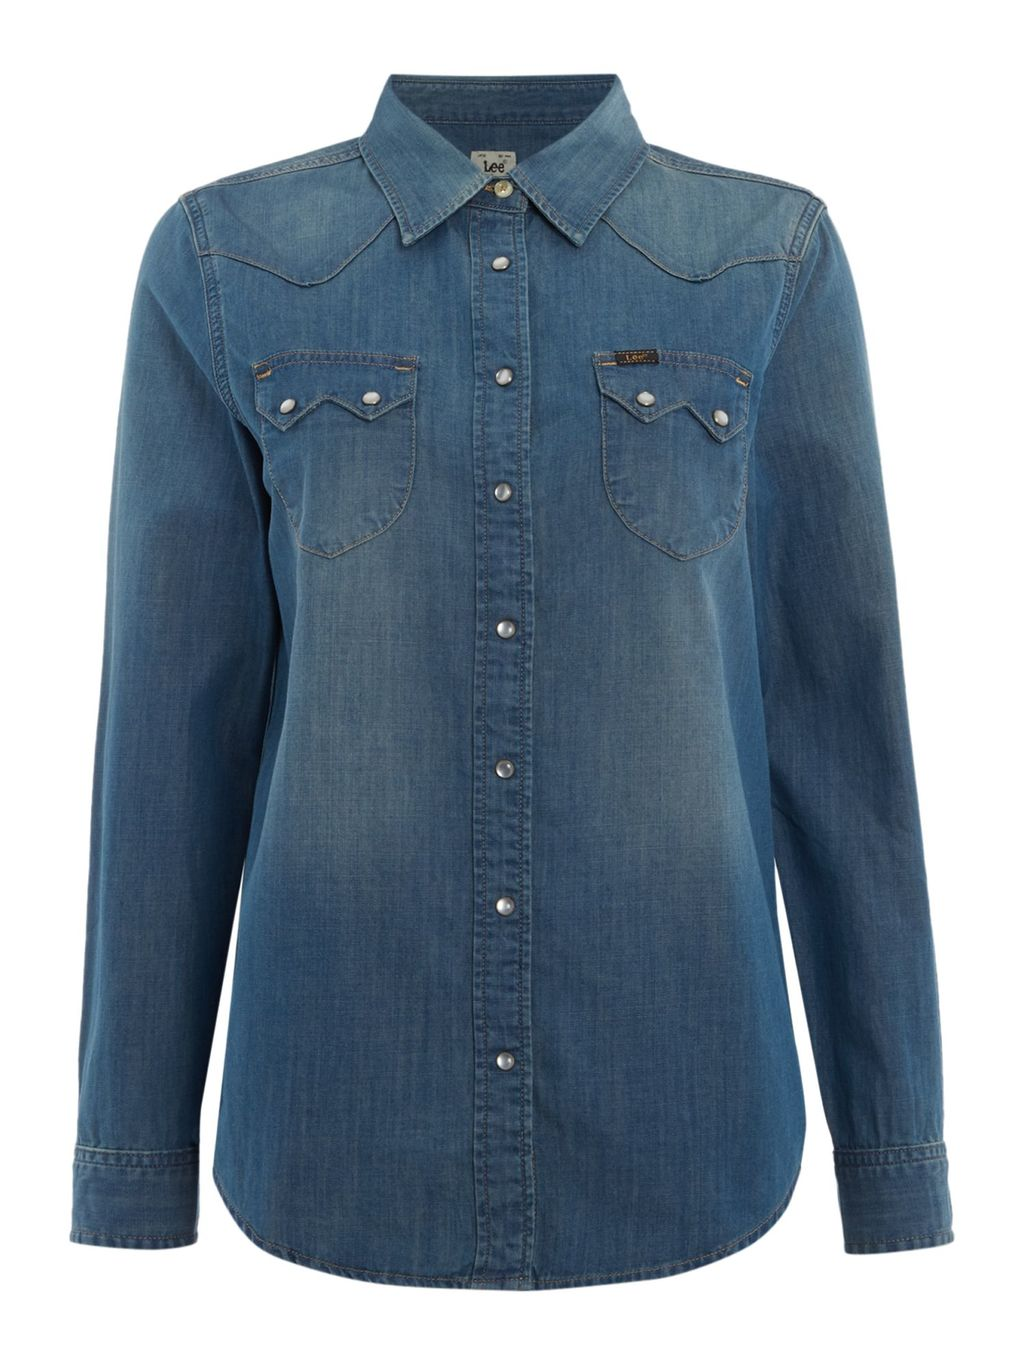 Regular Western Denim Shirt, Denim Mid Wash - neckline: shirt collar/peter pan/zip with opening; pattern: plain; style: shirt; predominant colour: navy; occasions: casual; length: standard; fibres: cotton - 100%; fit: body skimming; sleeve length: long sleeve; sleeve style: standard; texture group: denim; bust detail: bulky details at bust; pattern type: fabric; season: s/s 2016; wardrobe: highlight